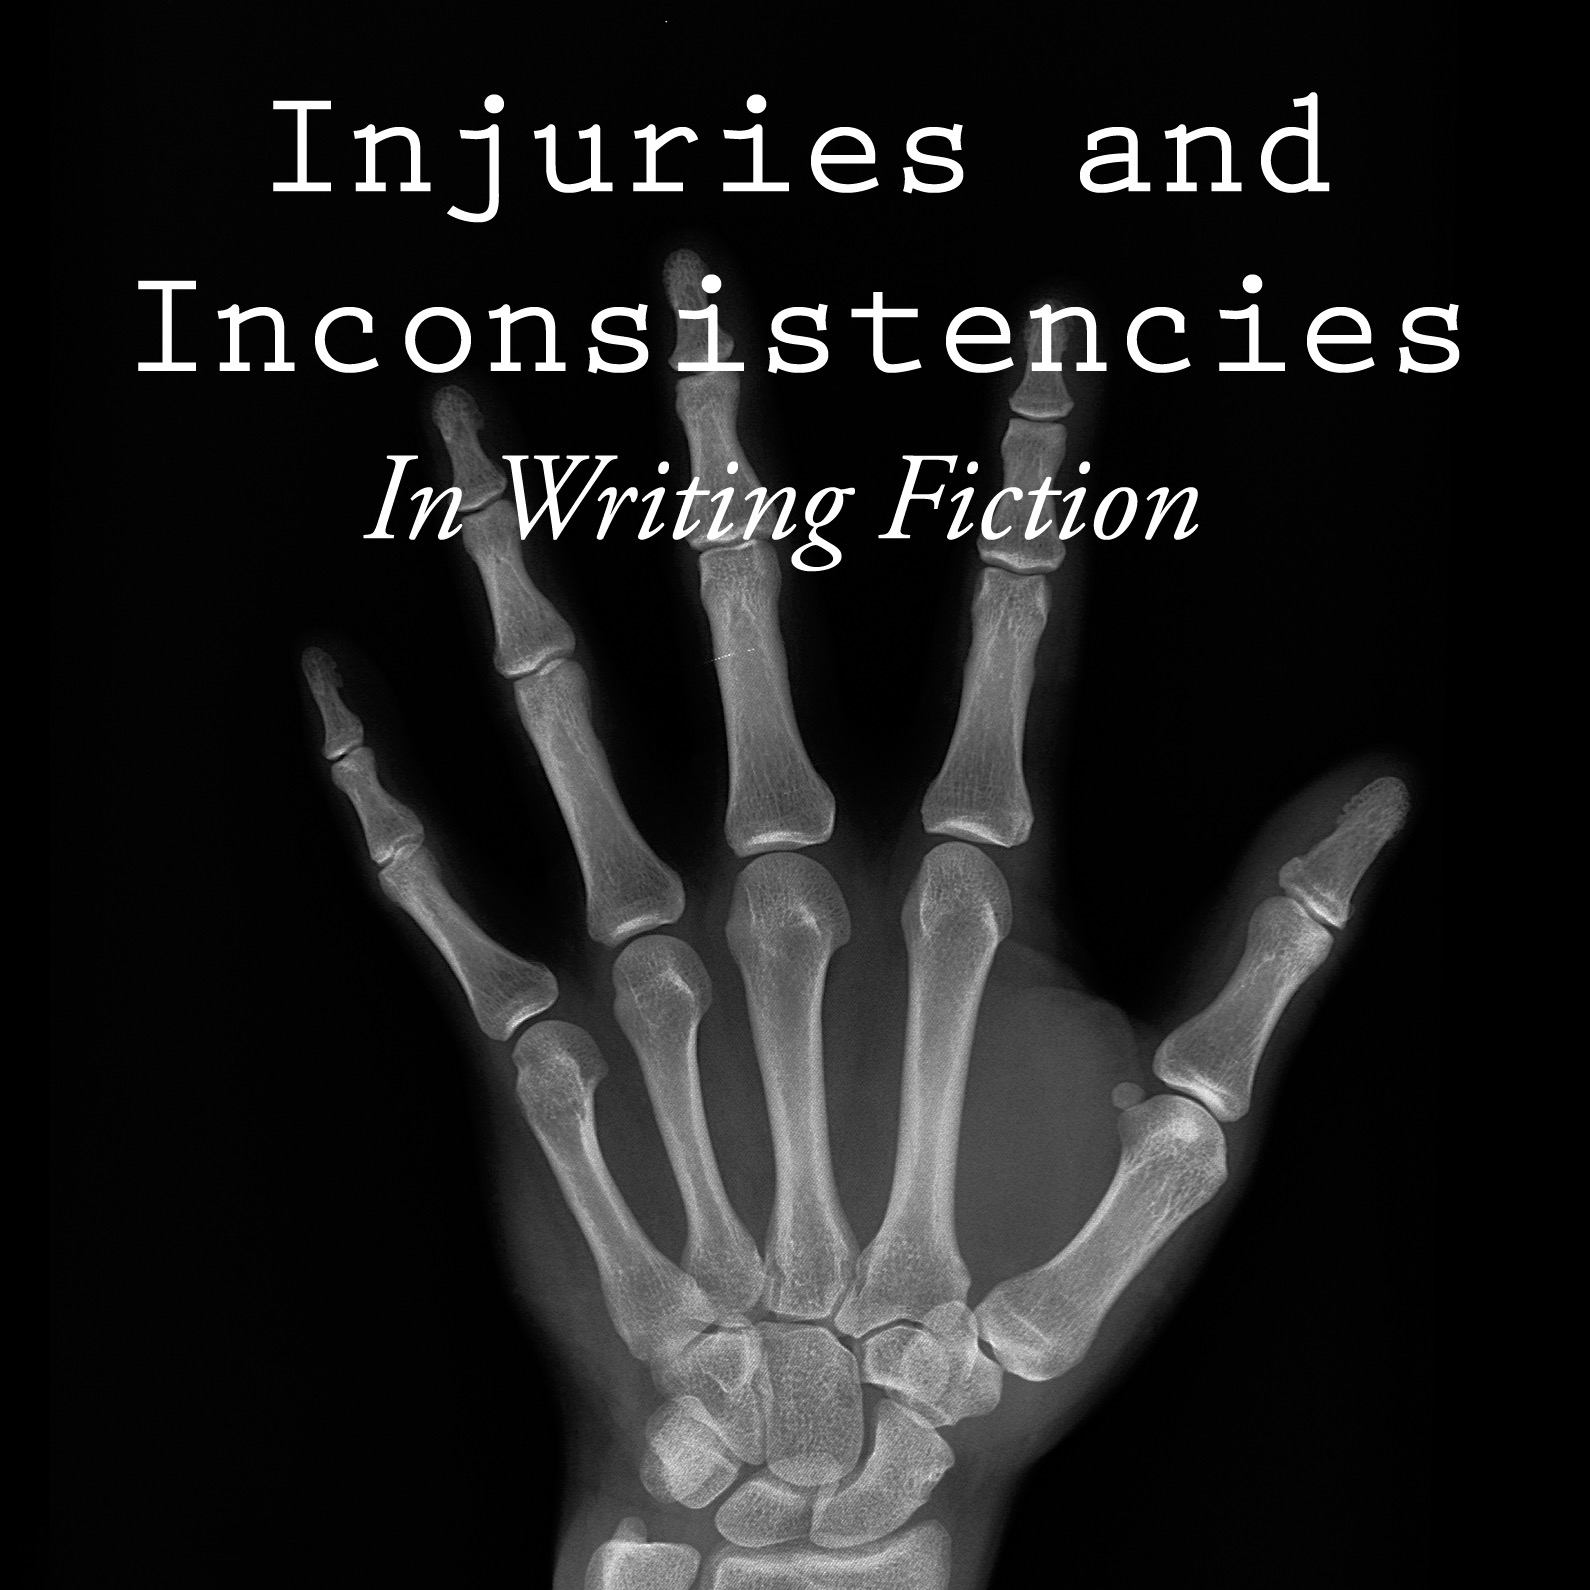 Injuries and Inconsistencies in writing fiction are easily made.